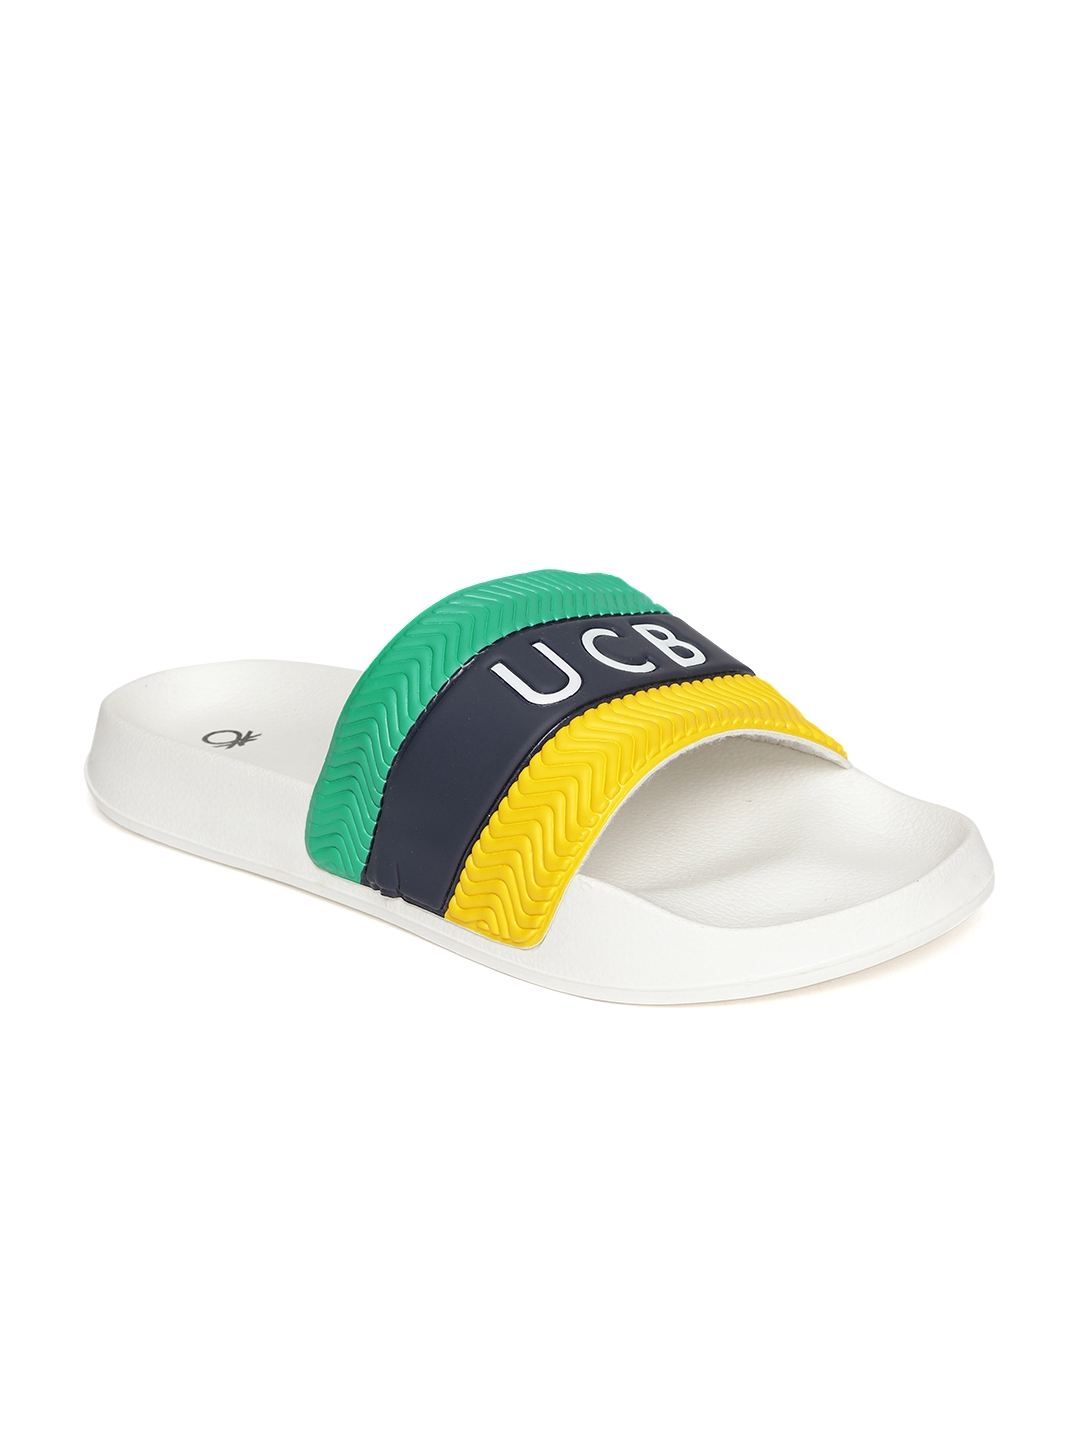 c1d5aa9ff023 Buy United Colors Of Benetton Men Yellow   Green Striped Sliders ...